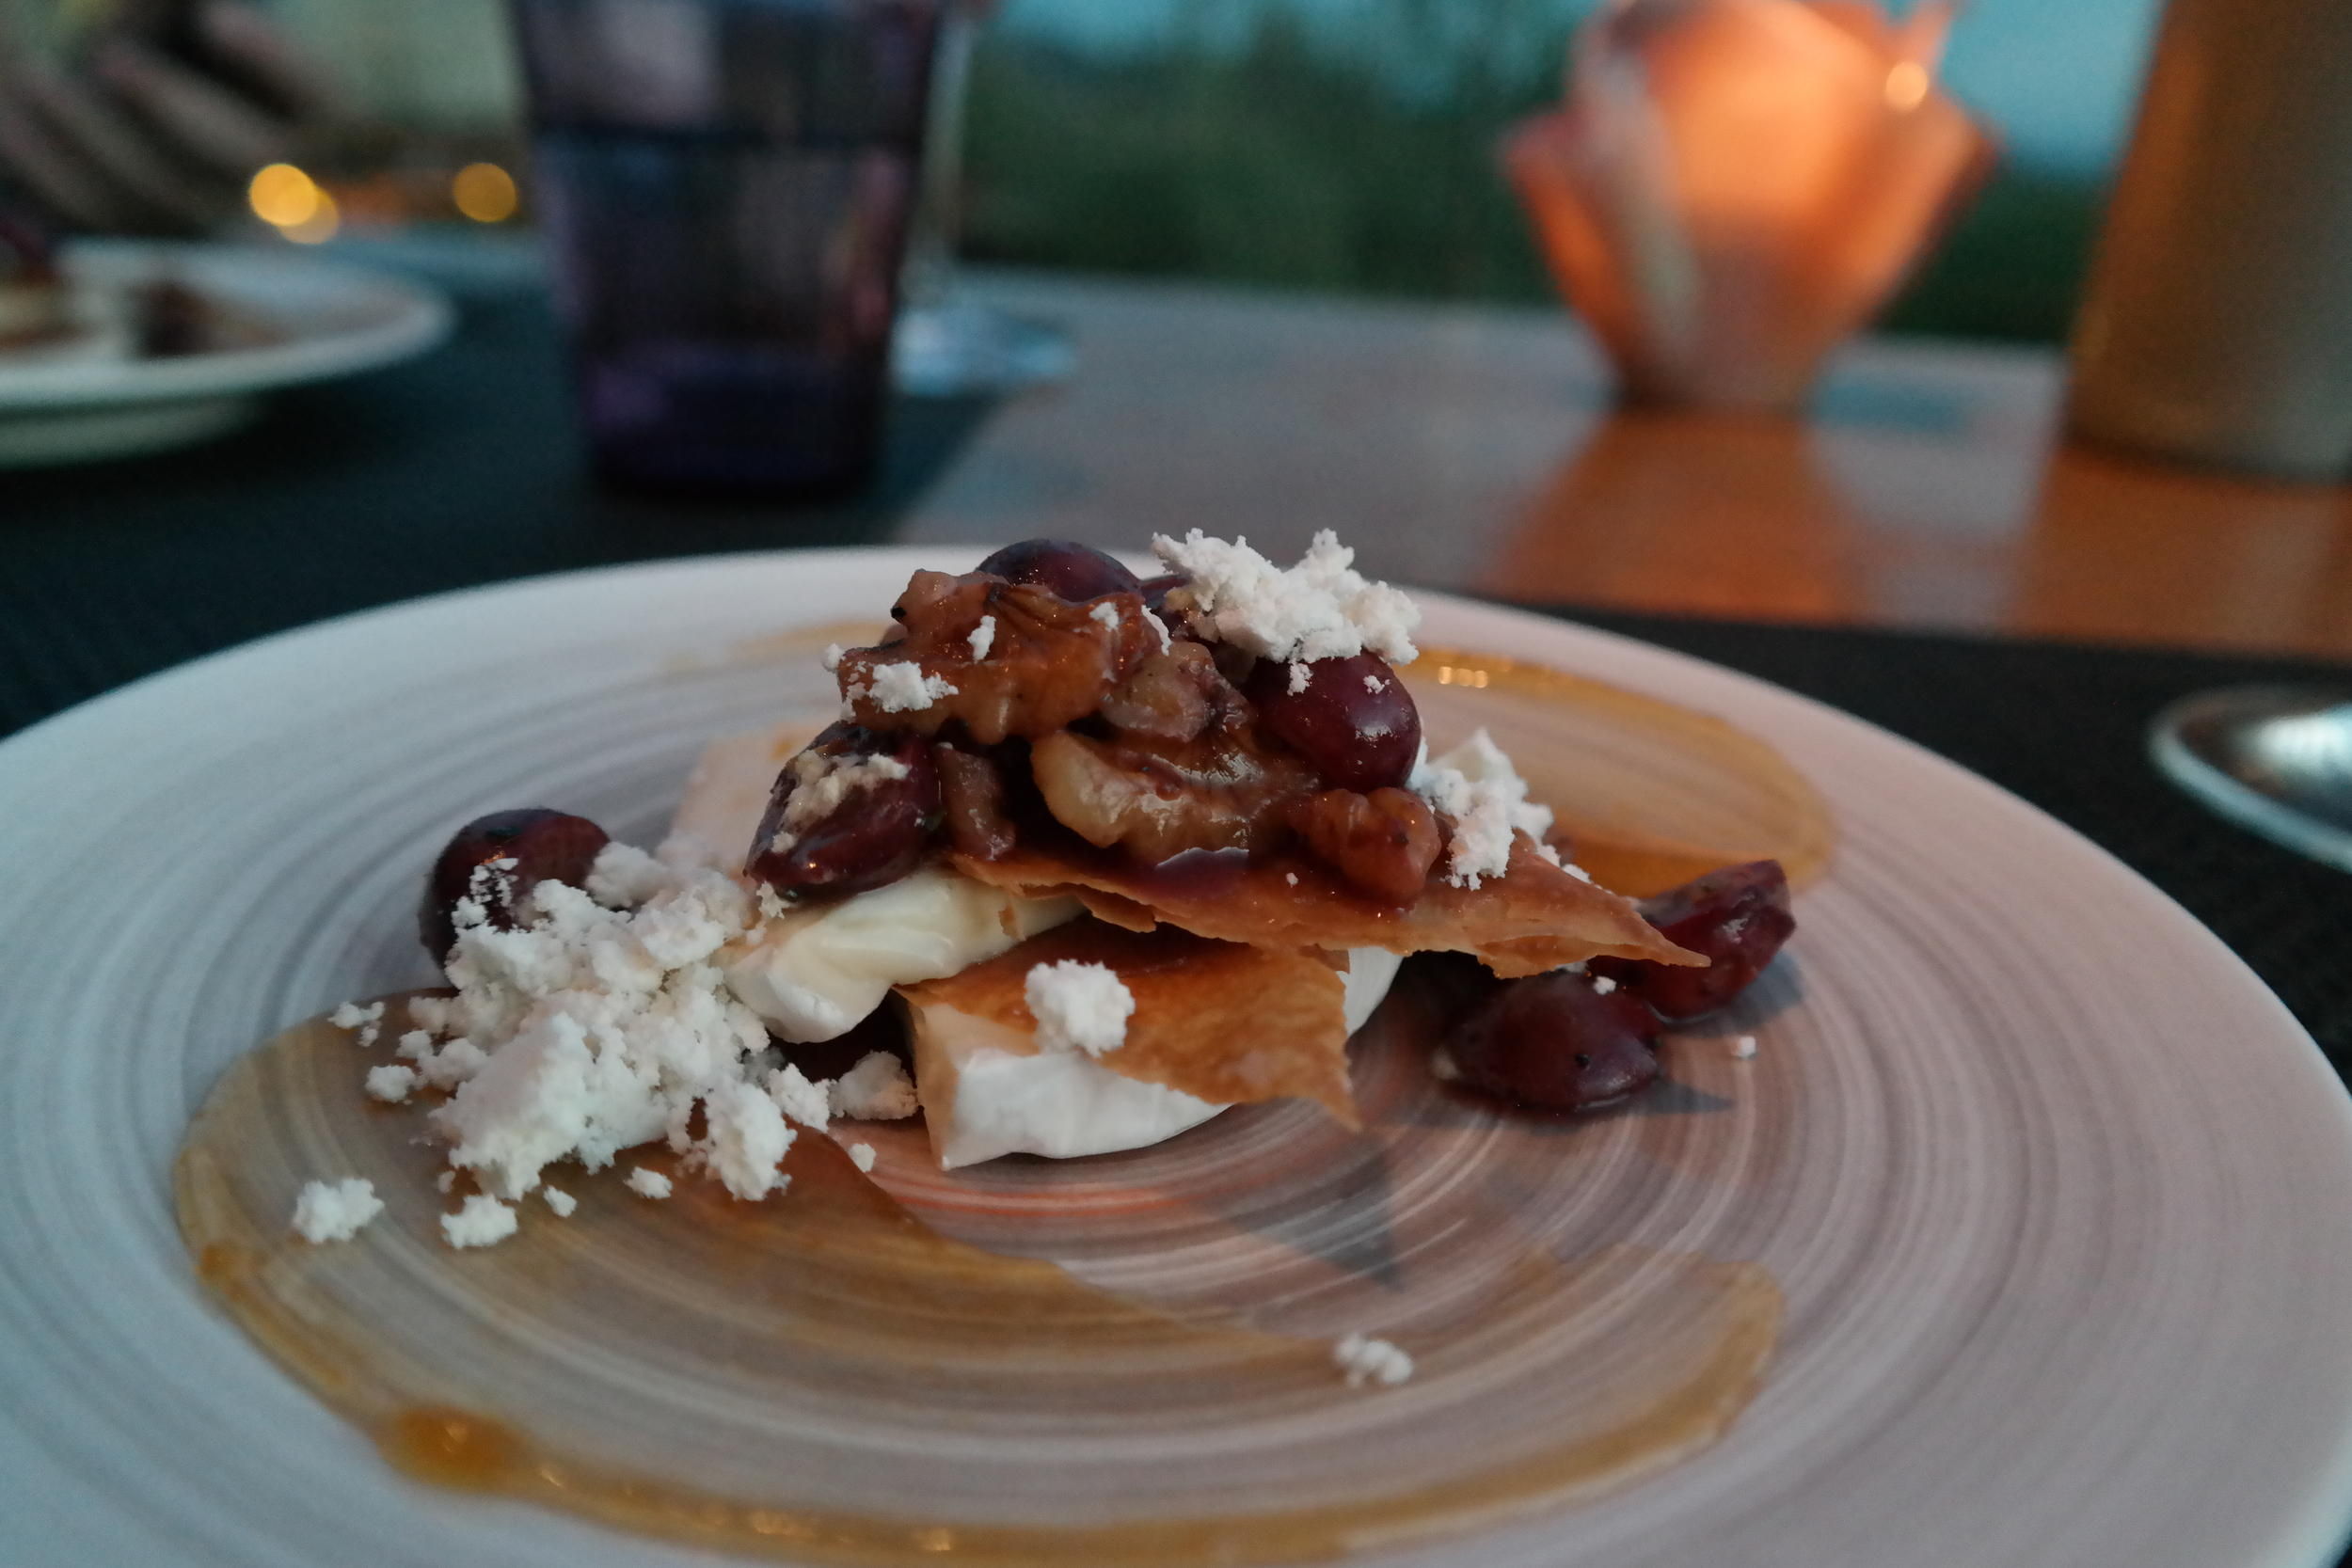 Triple creme brie Napoleon with grapes, walnuts, olive oil powder and apricot marmalade.